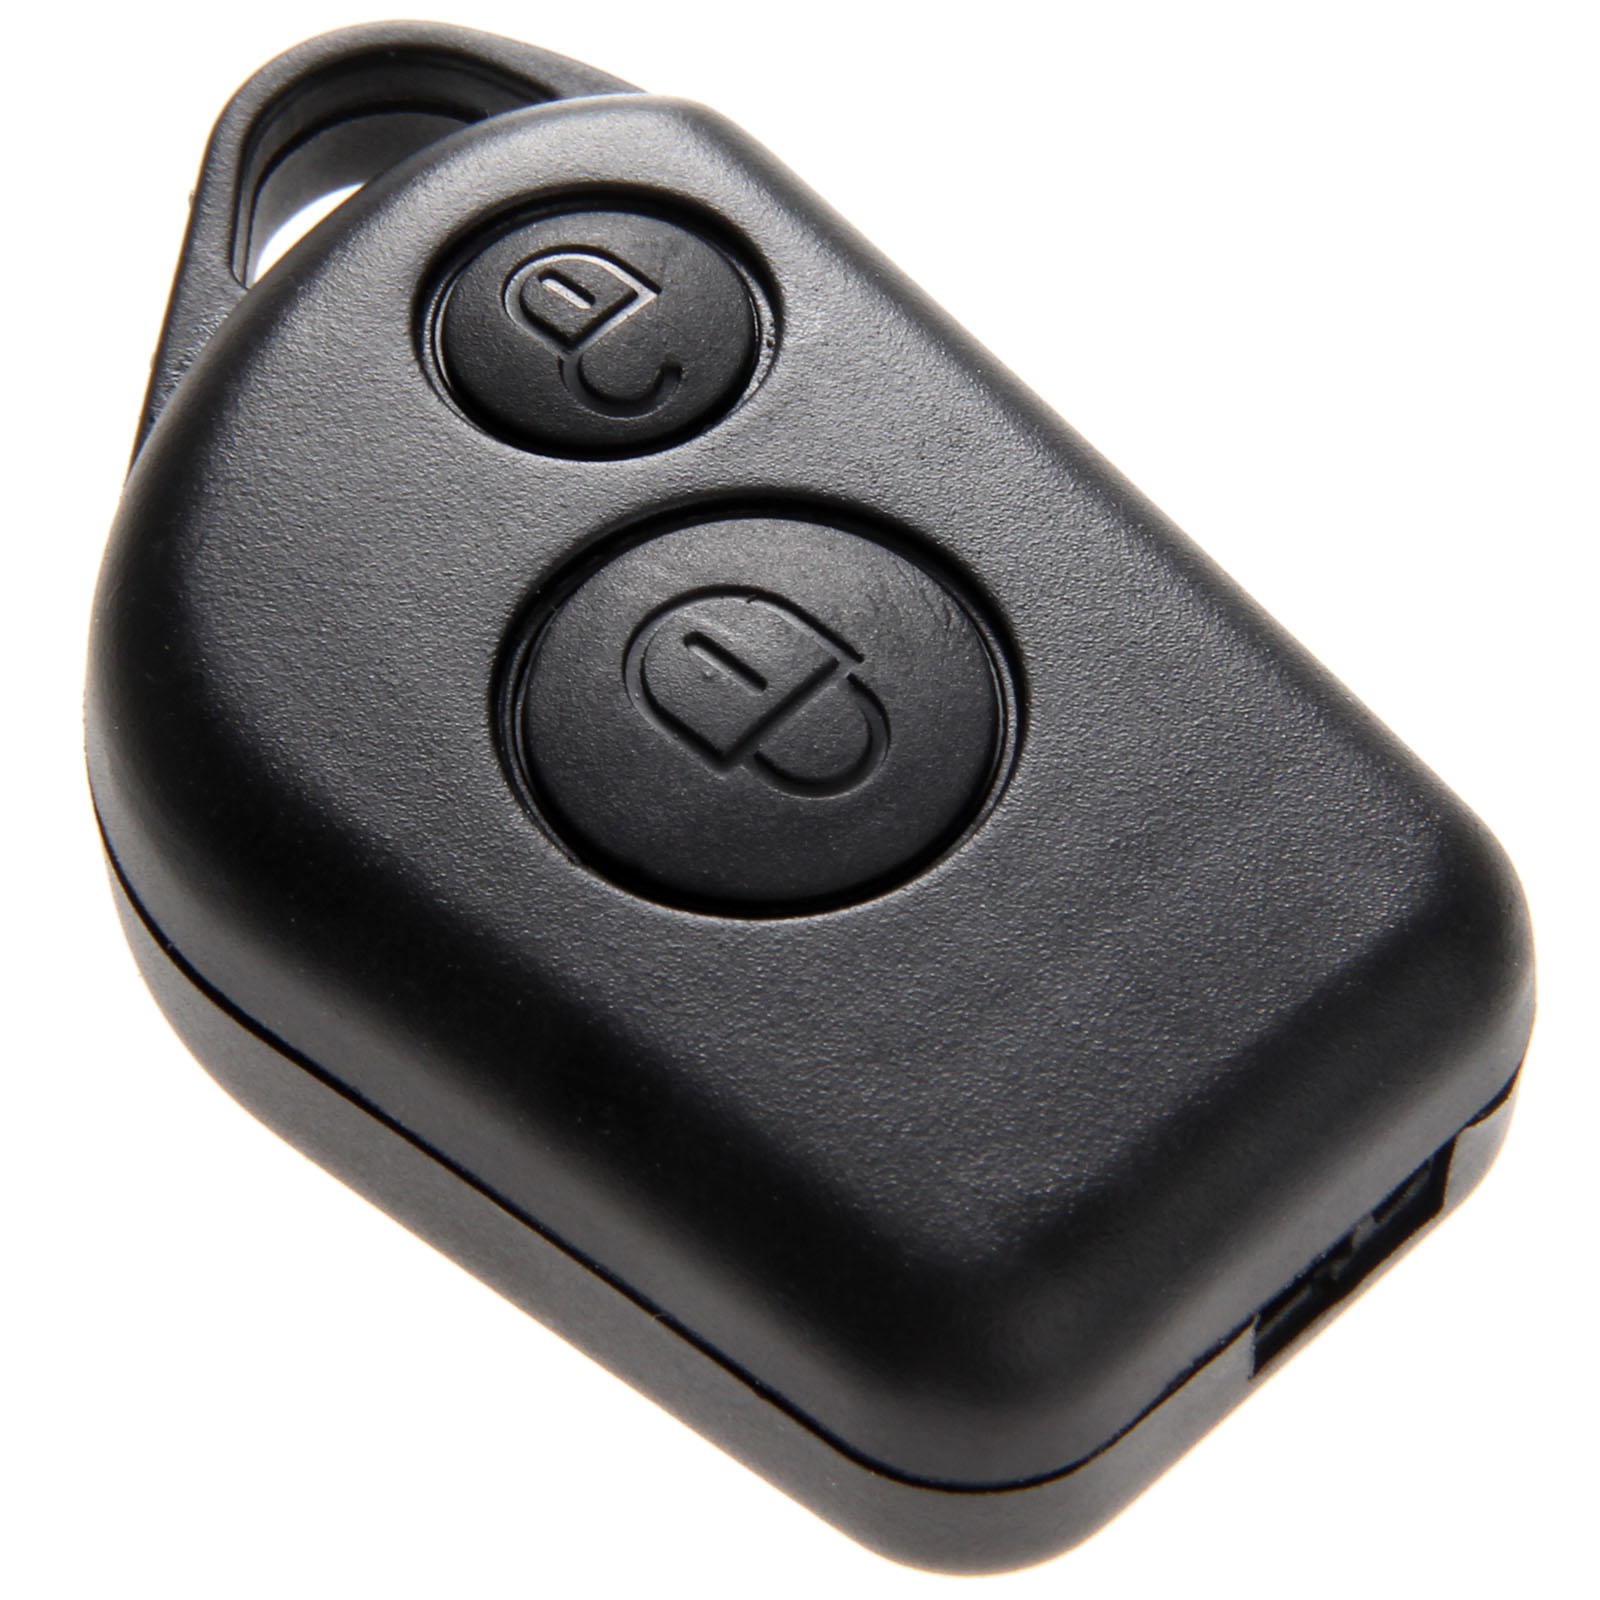 Image 5 - 2 Buttons Remote Key Fob Case Shell Fit For Citroen Saxo Berlingo Picasso Xsara Peugeot 306 307 406 Replacement Car Covers-in Car Key from Automobiles & Motorcycles